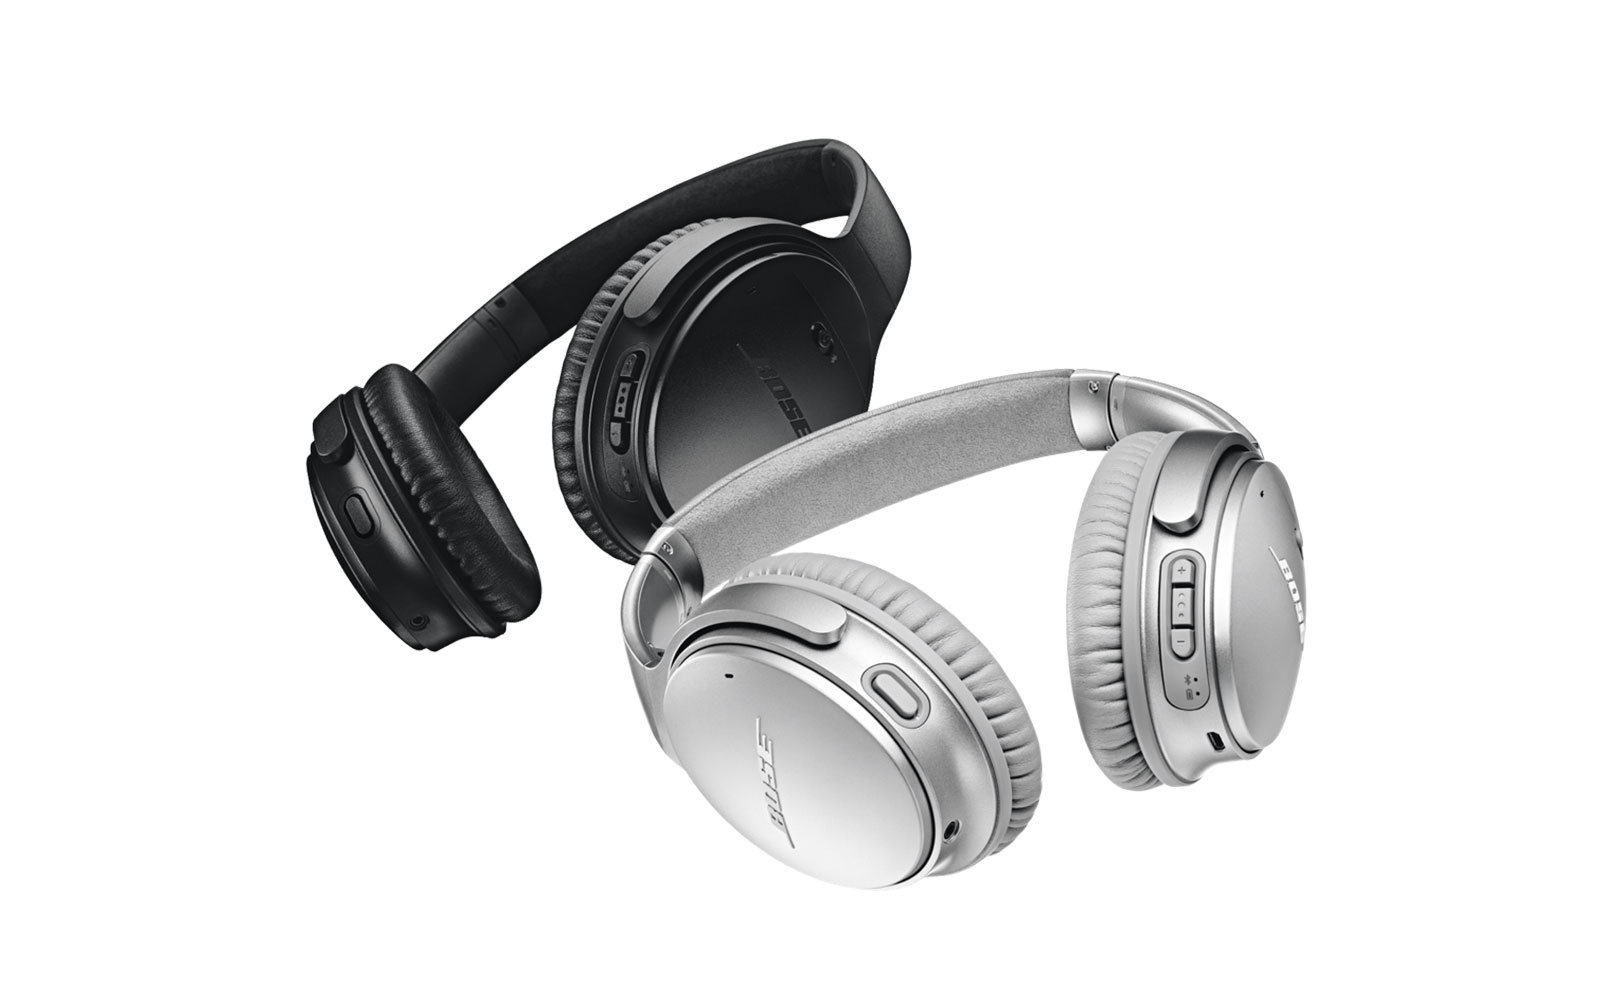 bose heaphones travel gift